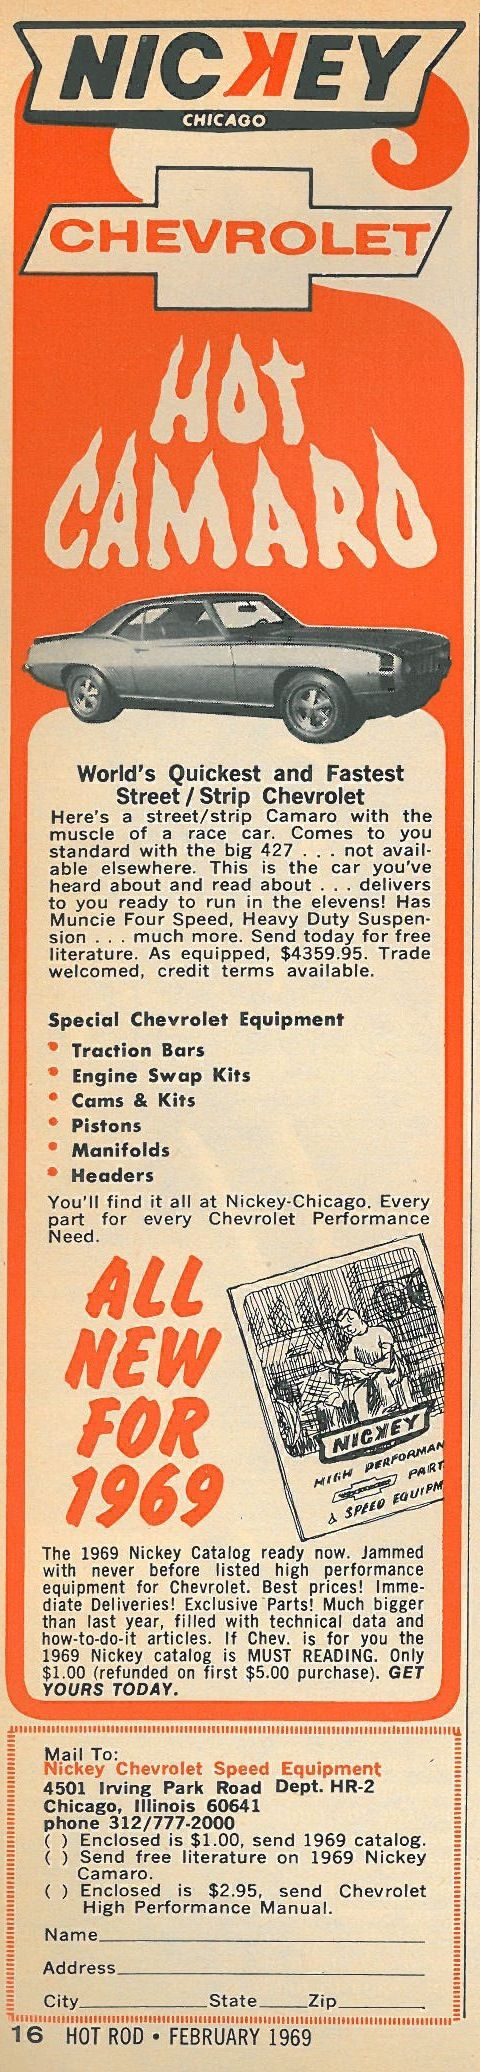 Vintage Chevrolet Camaro Ad - Chicago Dealership